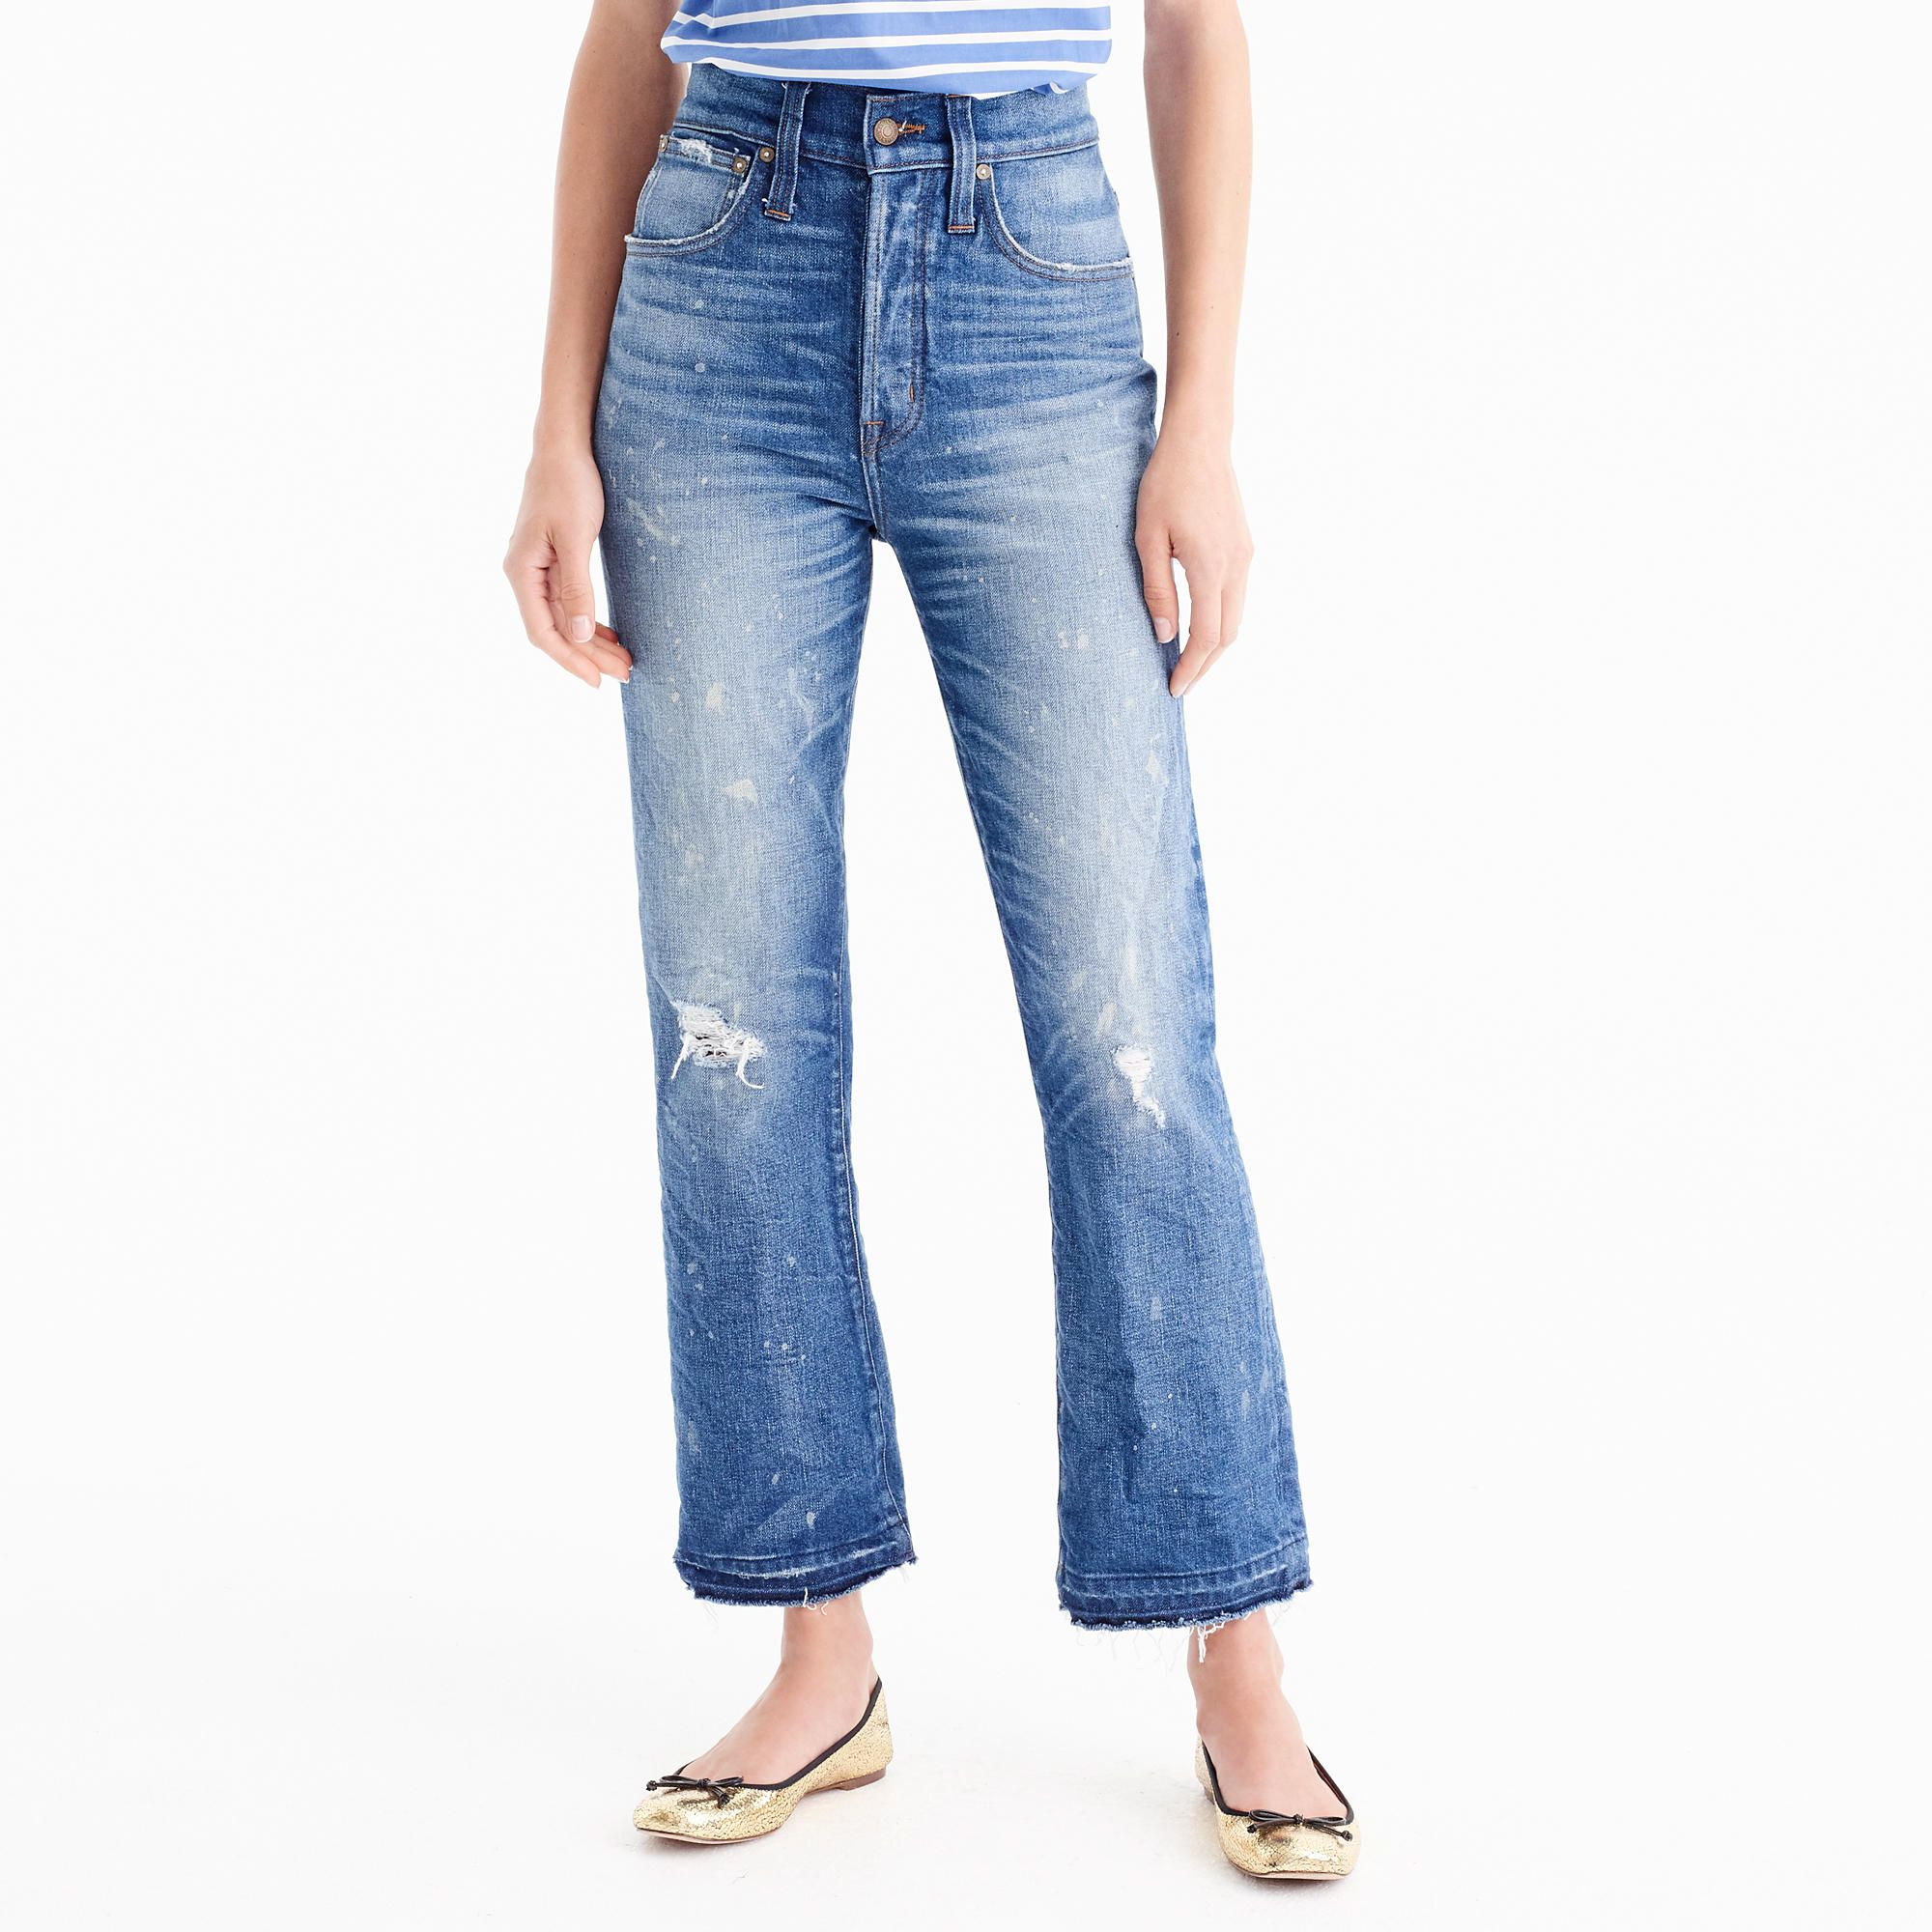 Point Sur cropped high-rise demi-boot jean   The silhouette, Points ... 8859e1f02c13